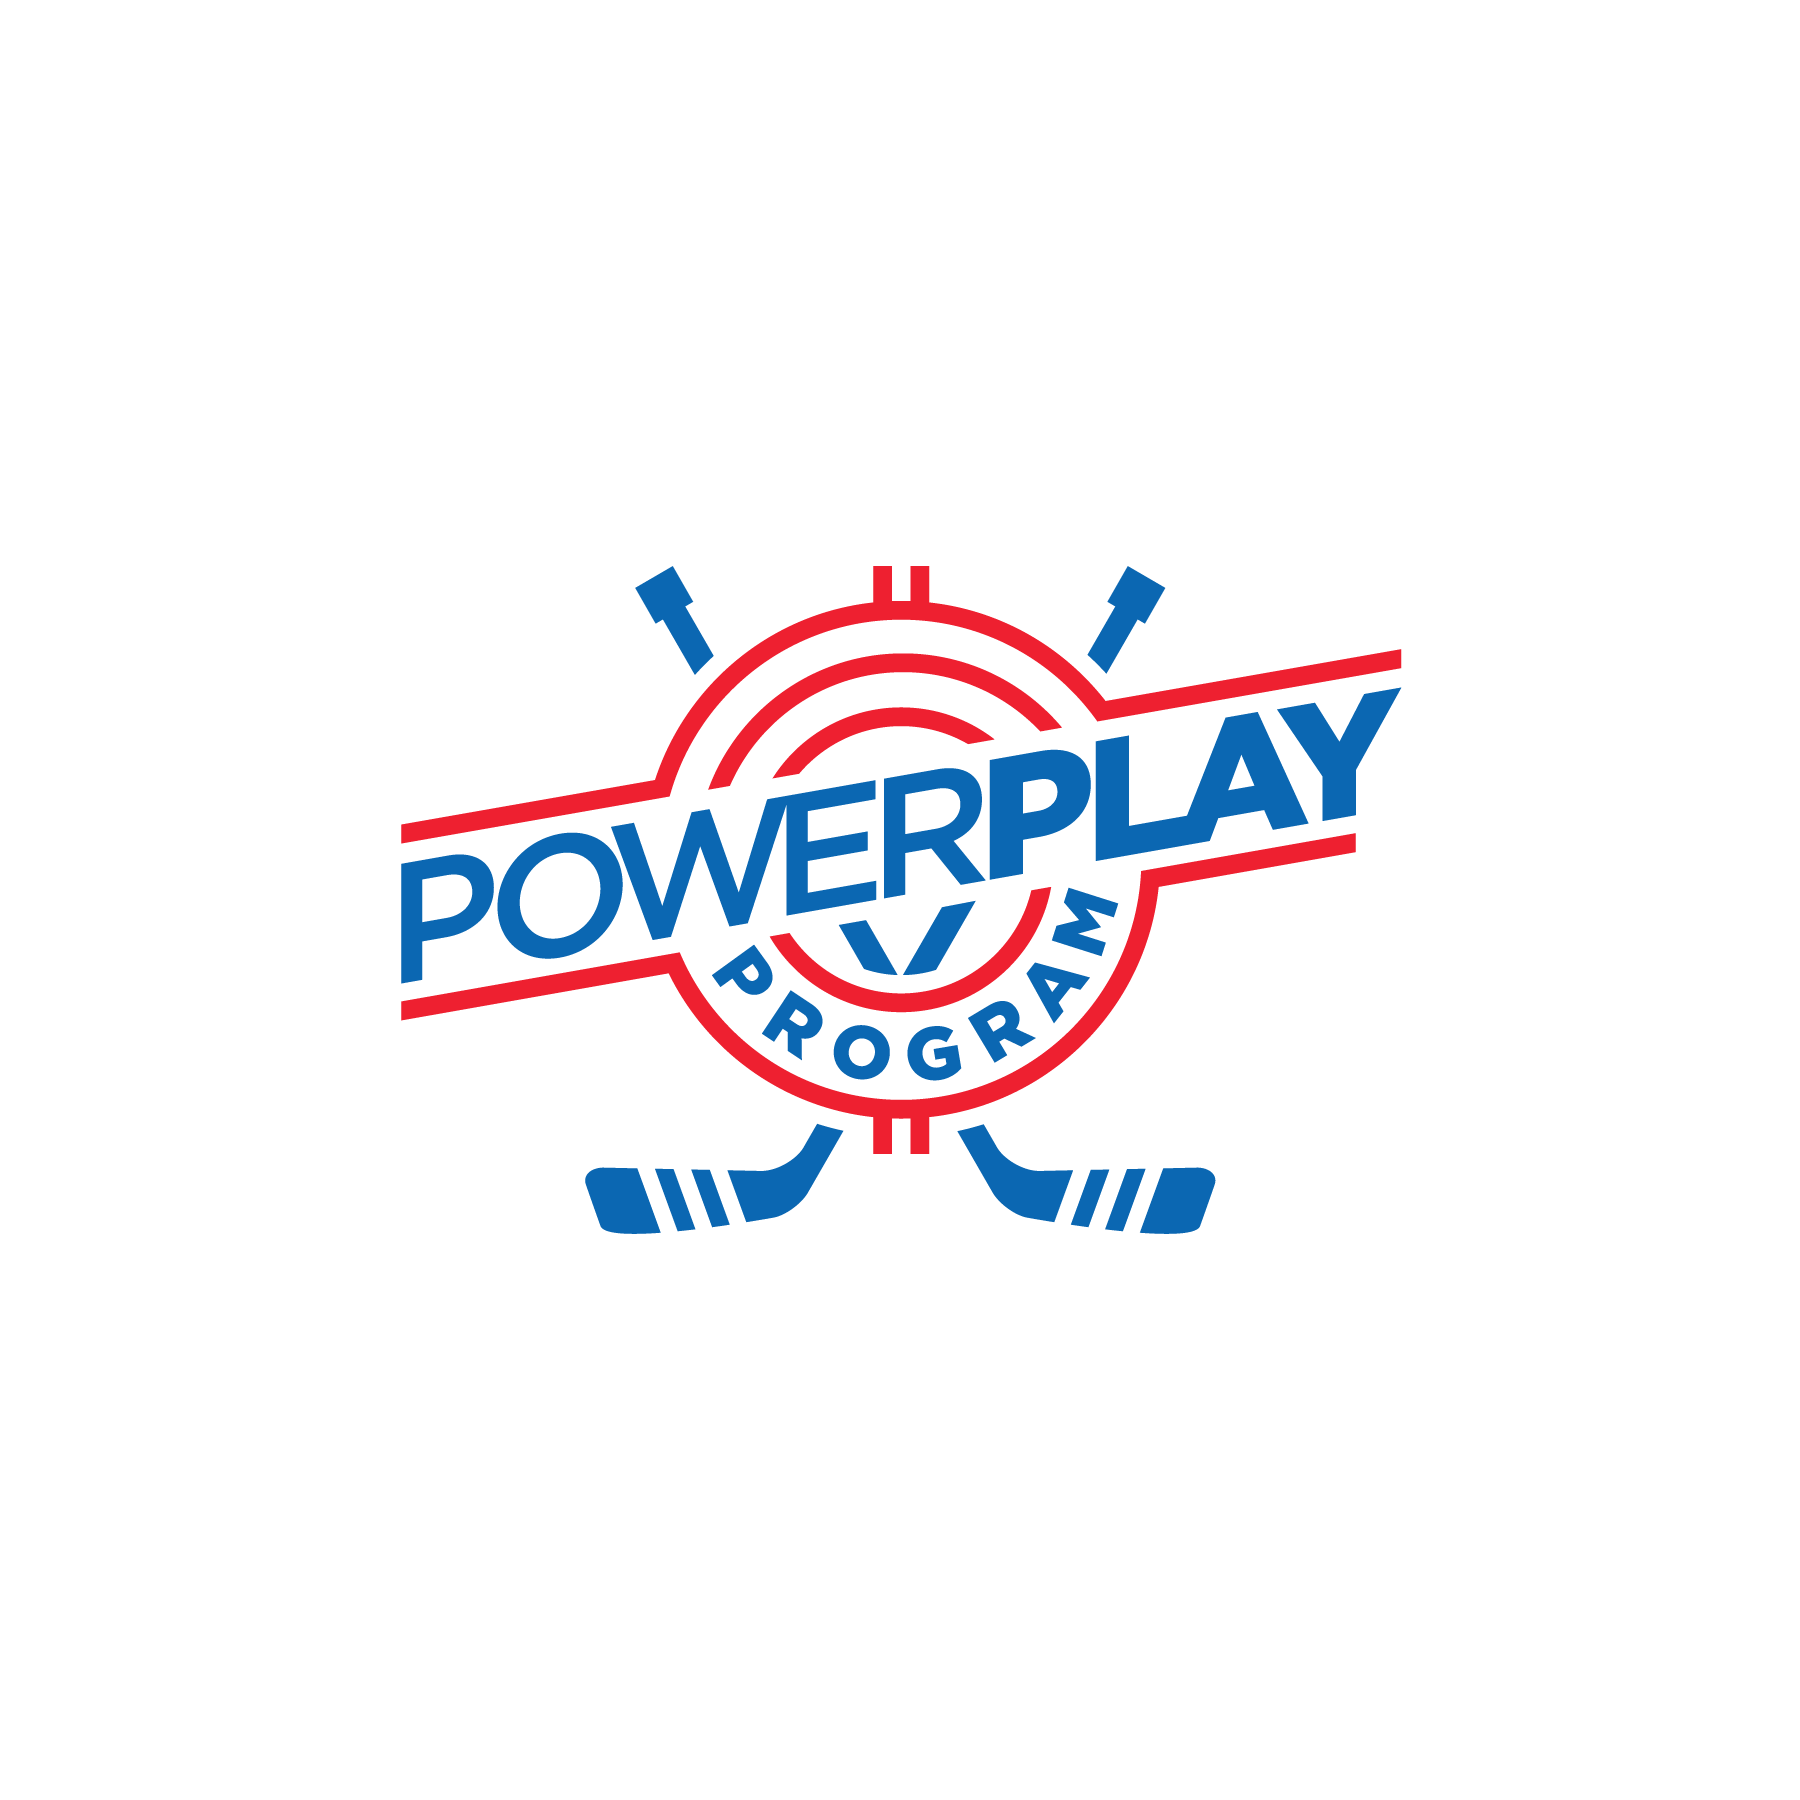 Power Play Program